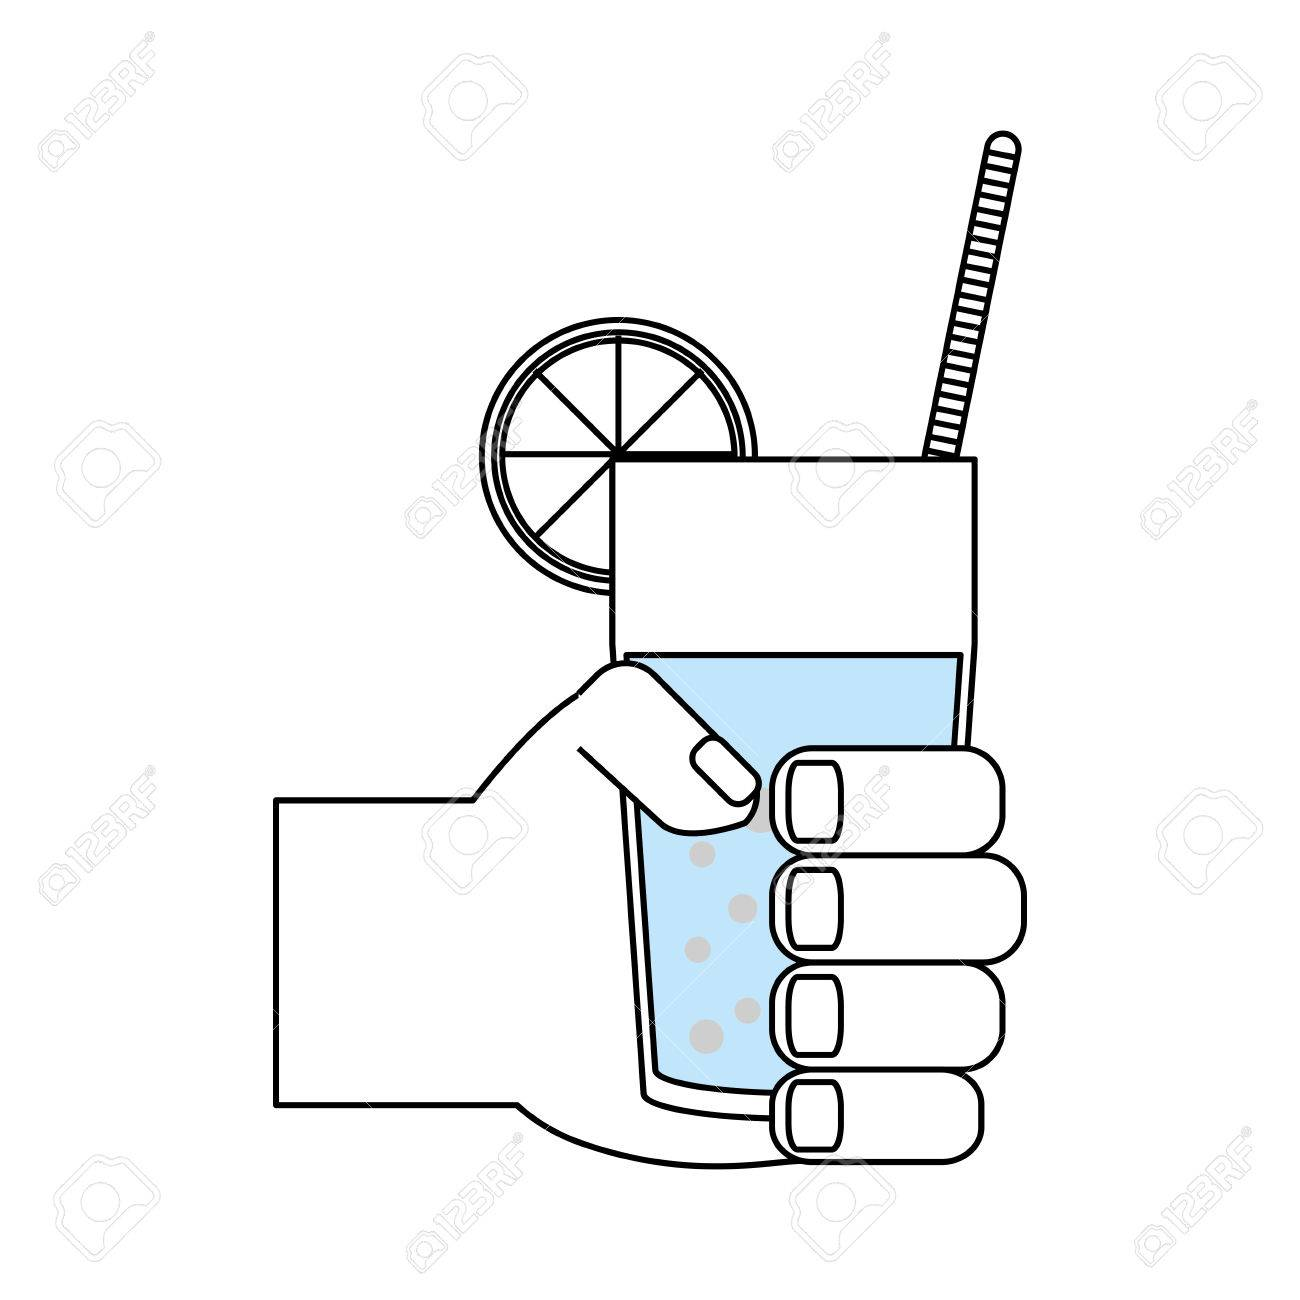 Glass juice cups design - Juice Glass Cup Icon Vector Illustration Graphic Design Stock Vector 83959313